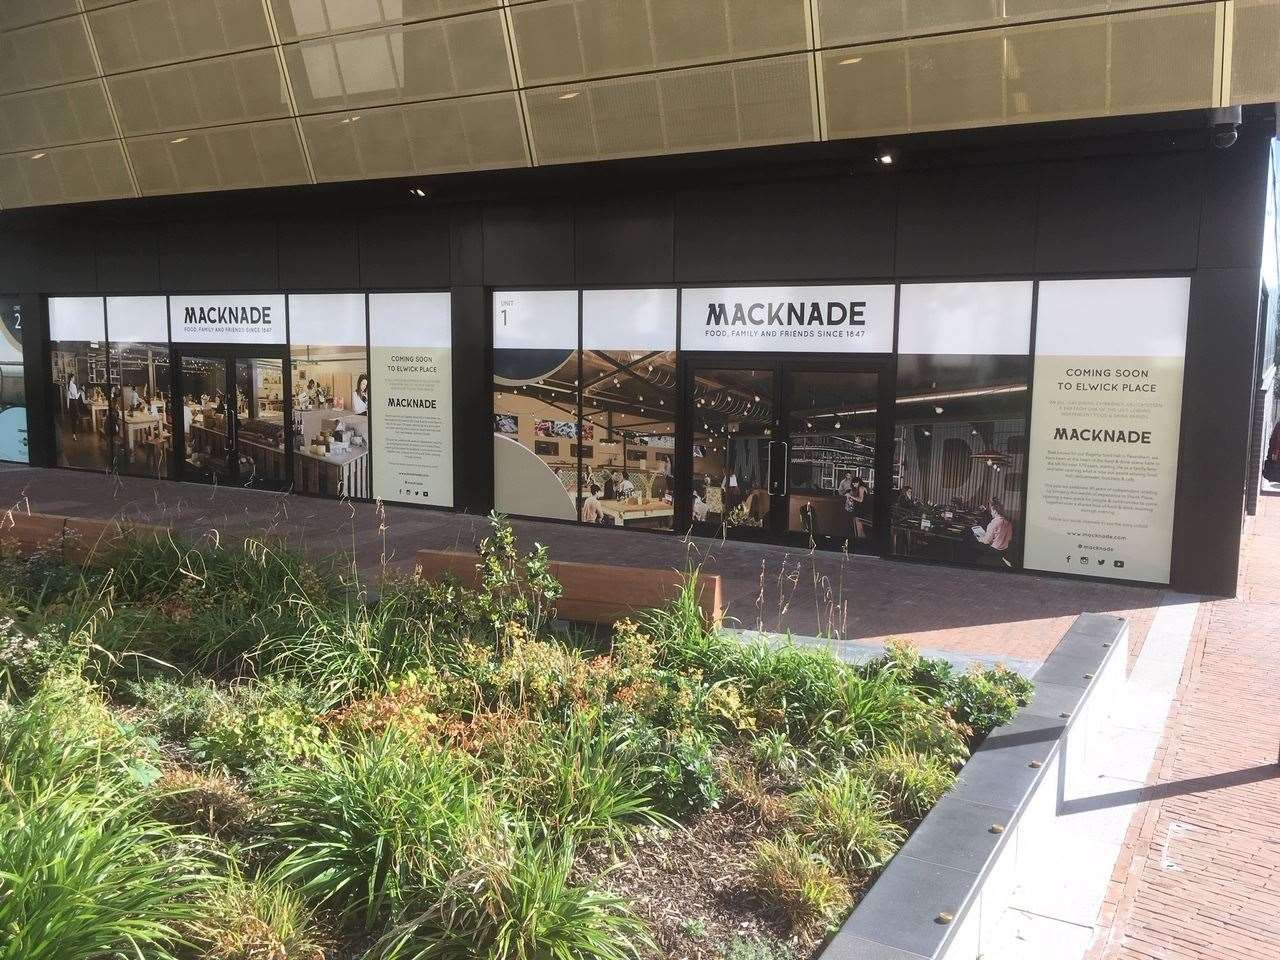 Macknade signage has appeared at Elwick Place